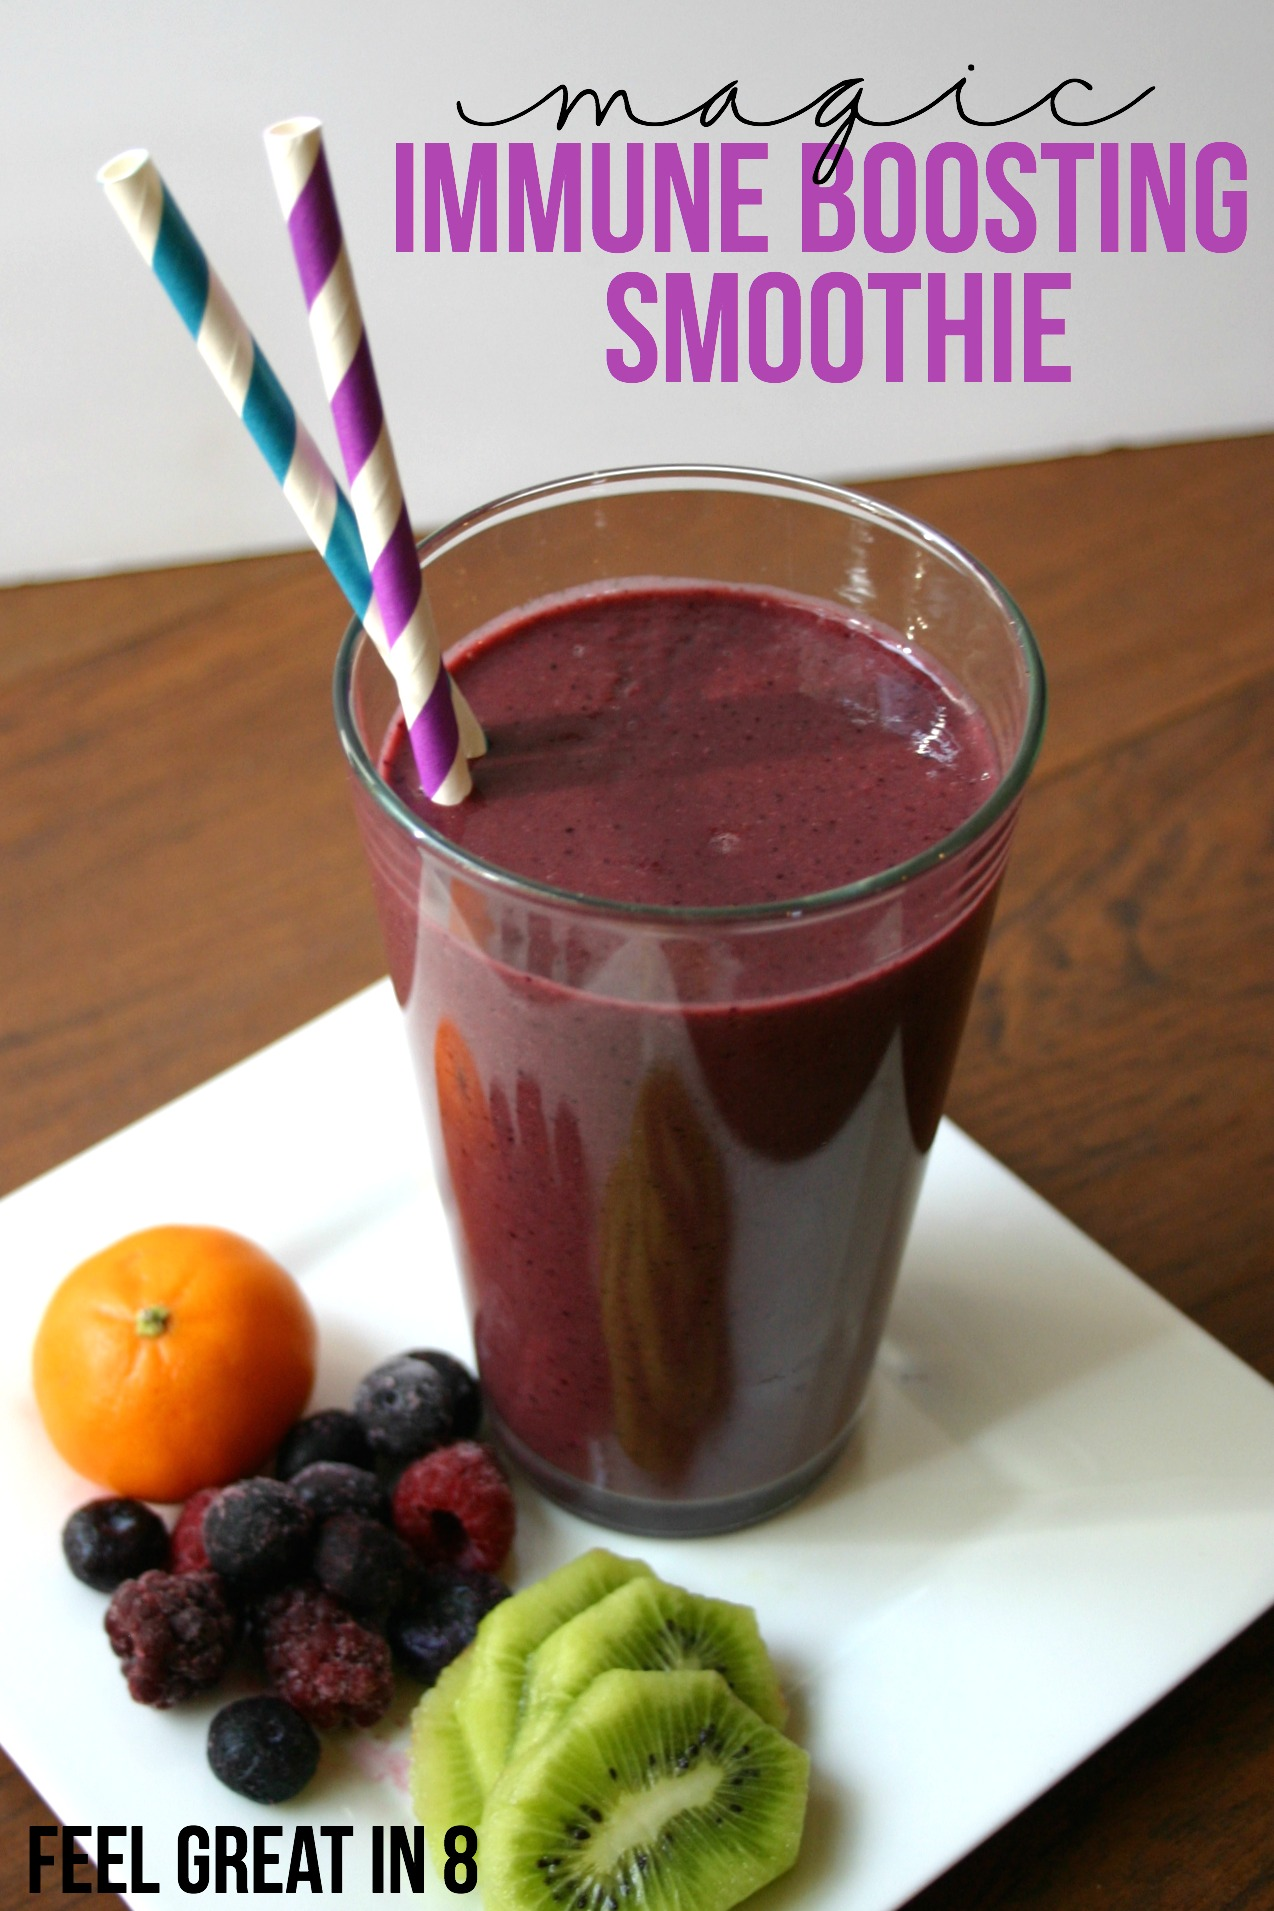 magic immune boosting smoothie